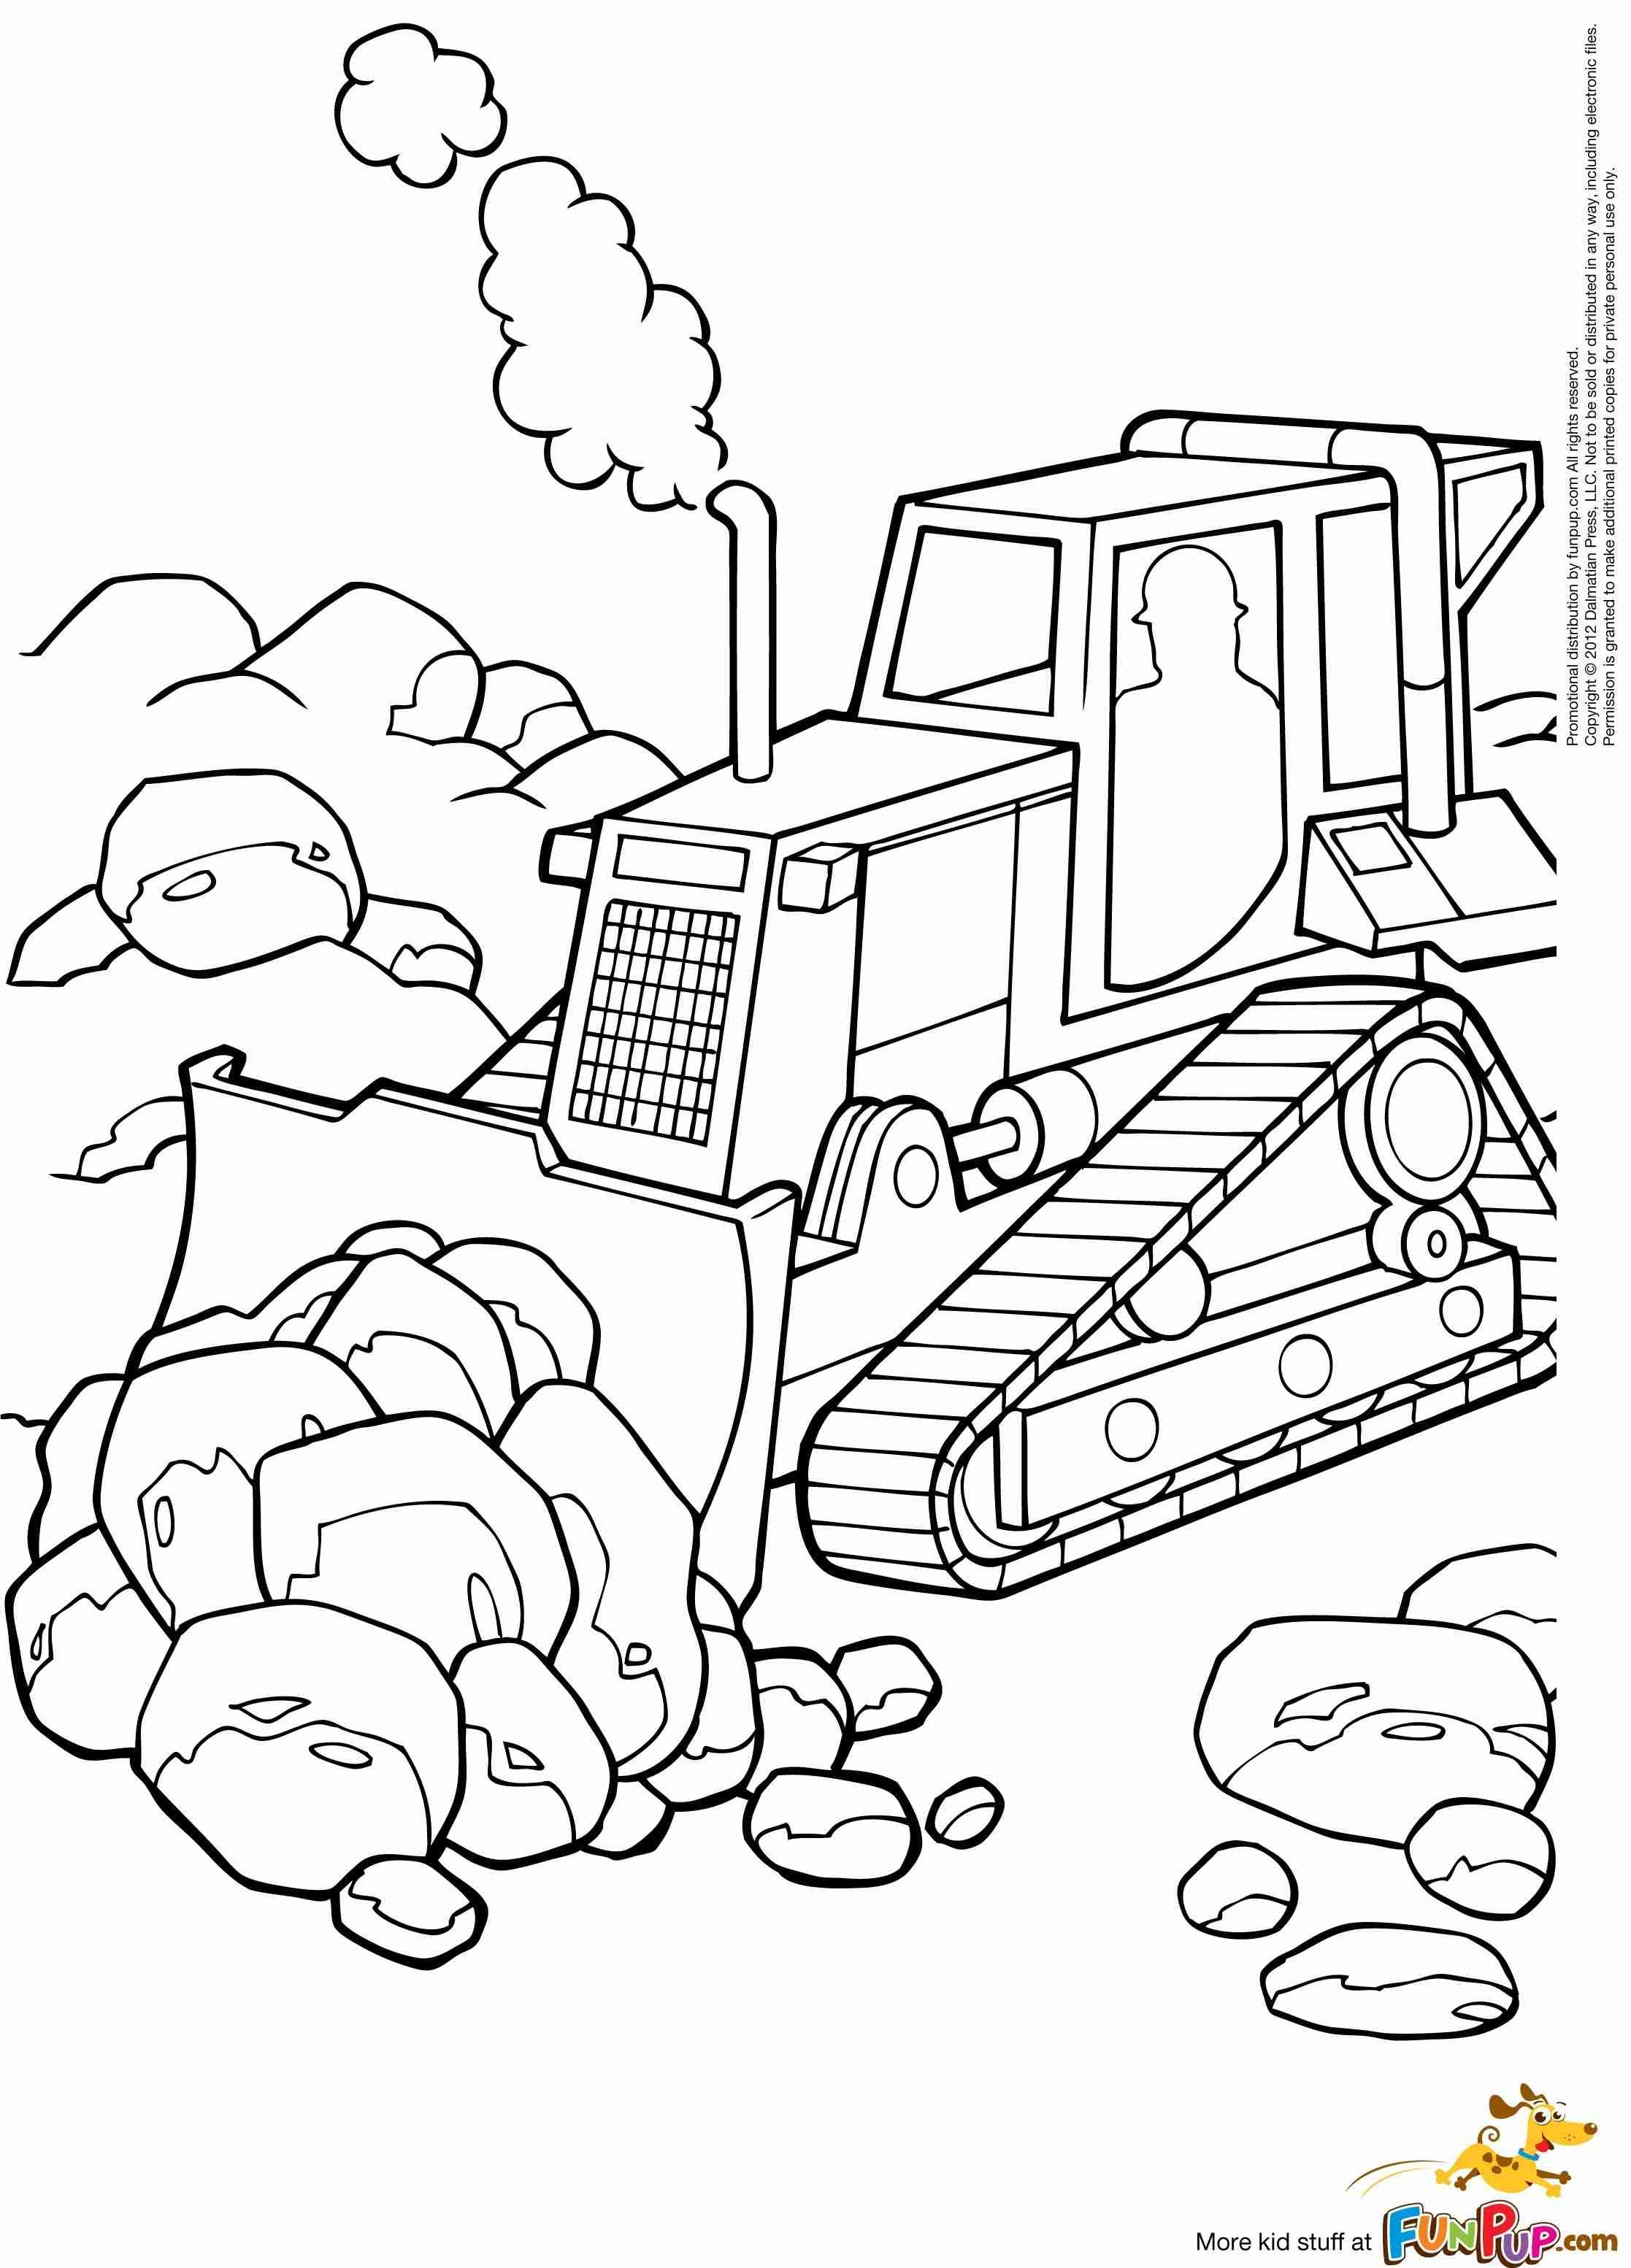 2234x3107 Lego Halo Coloring Pages To Print Copy Halo Master Chief Coloring